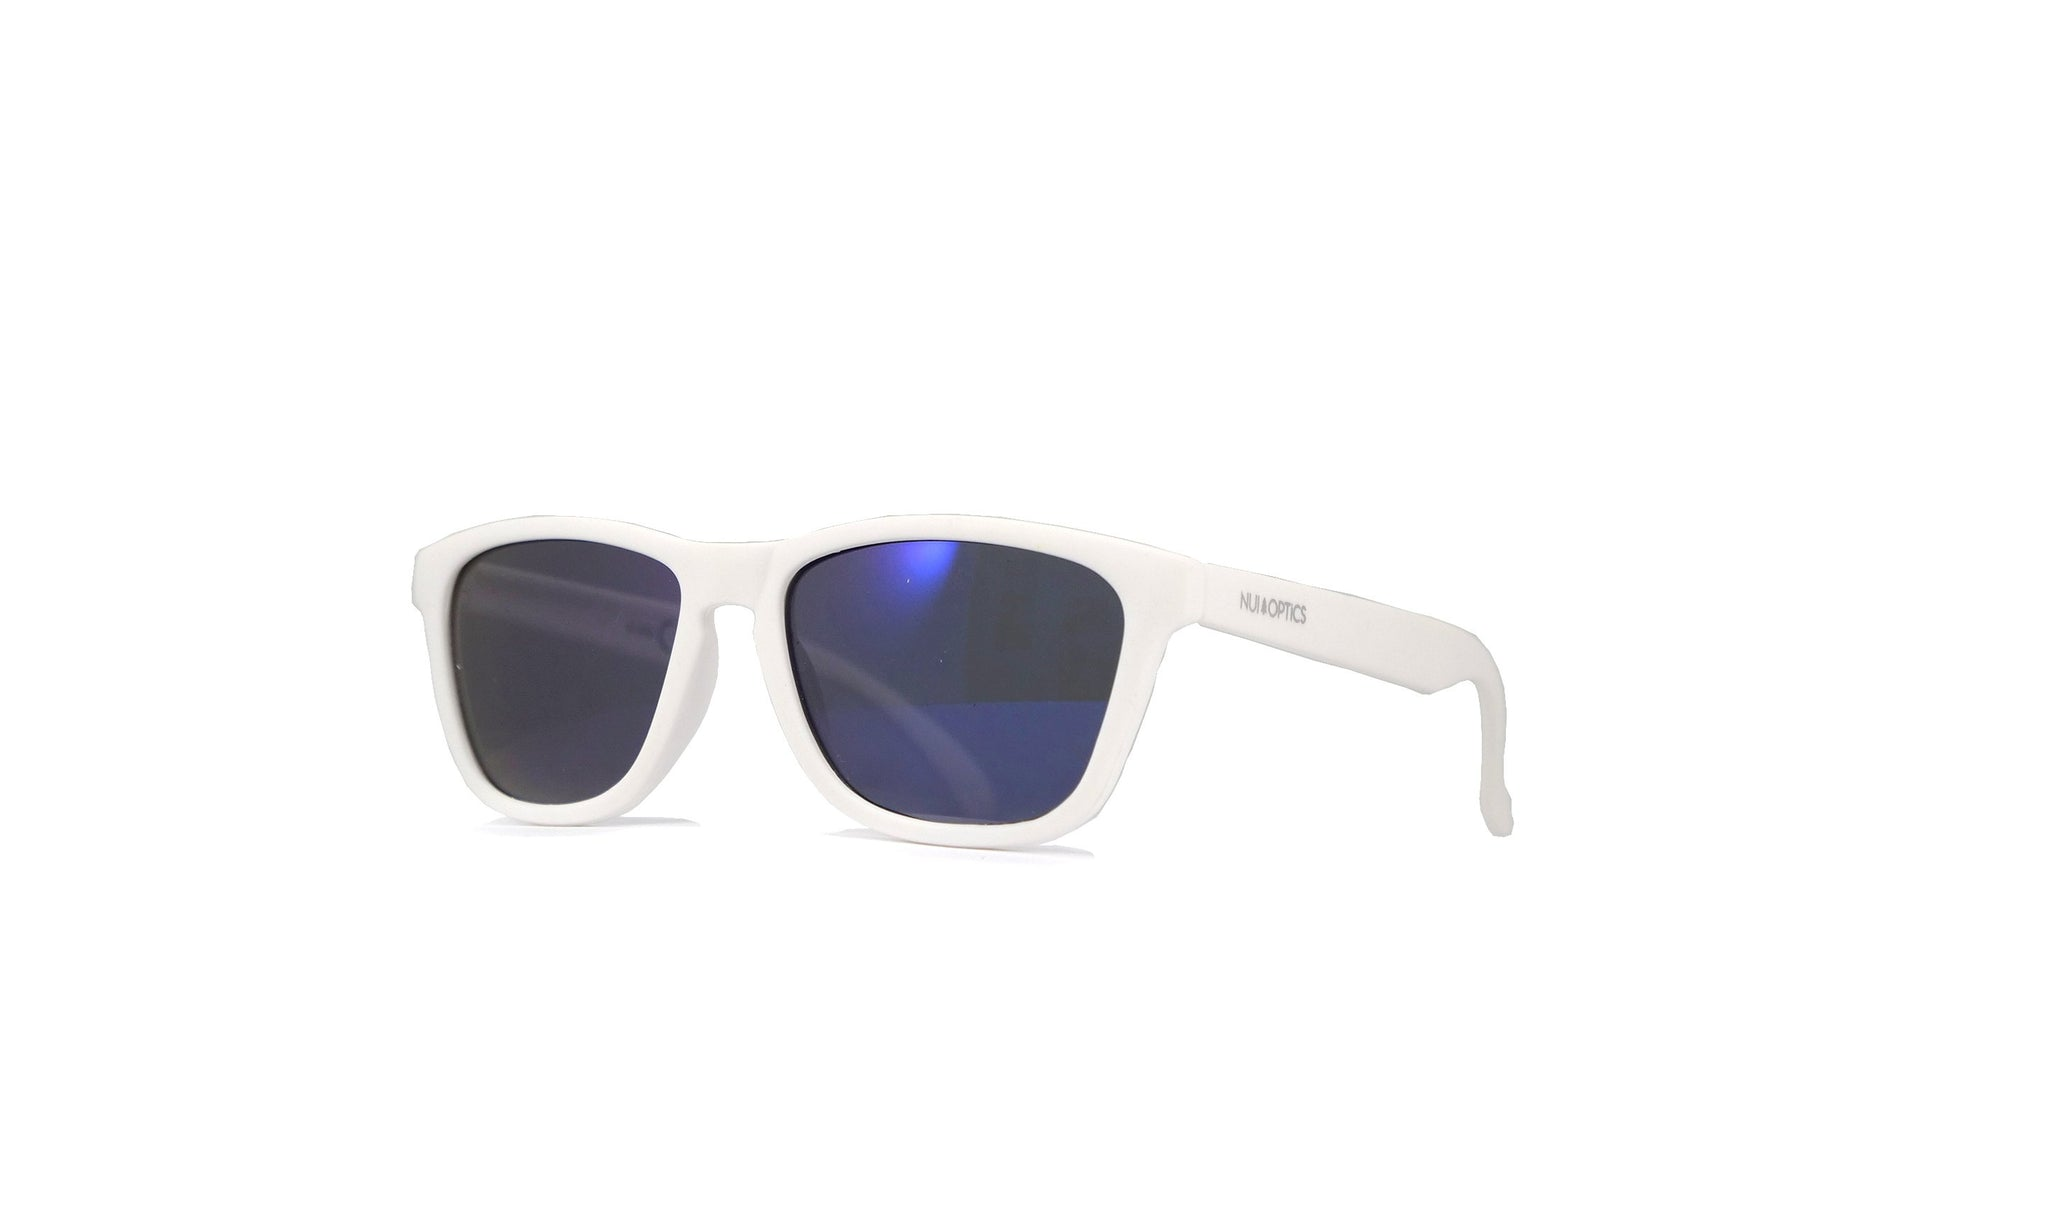 Piccoli White - Nui Optics